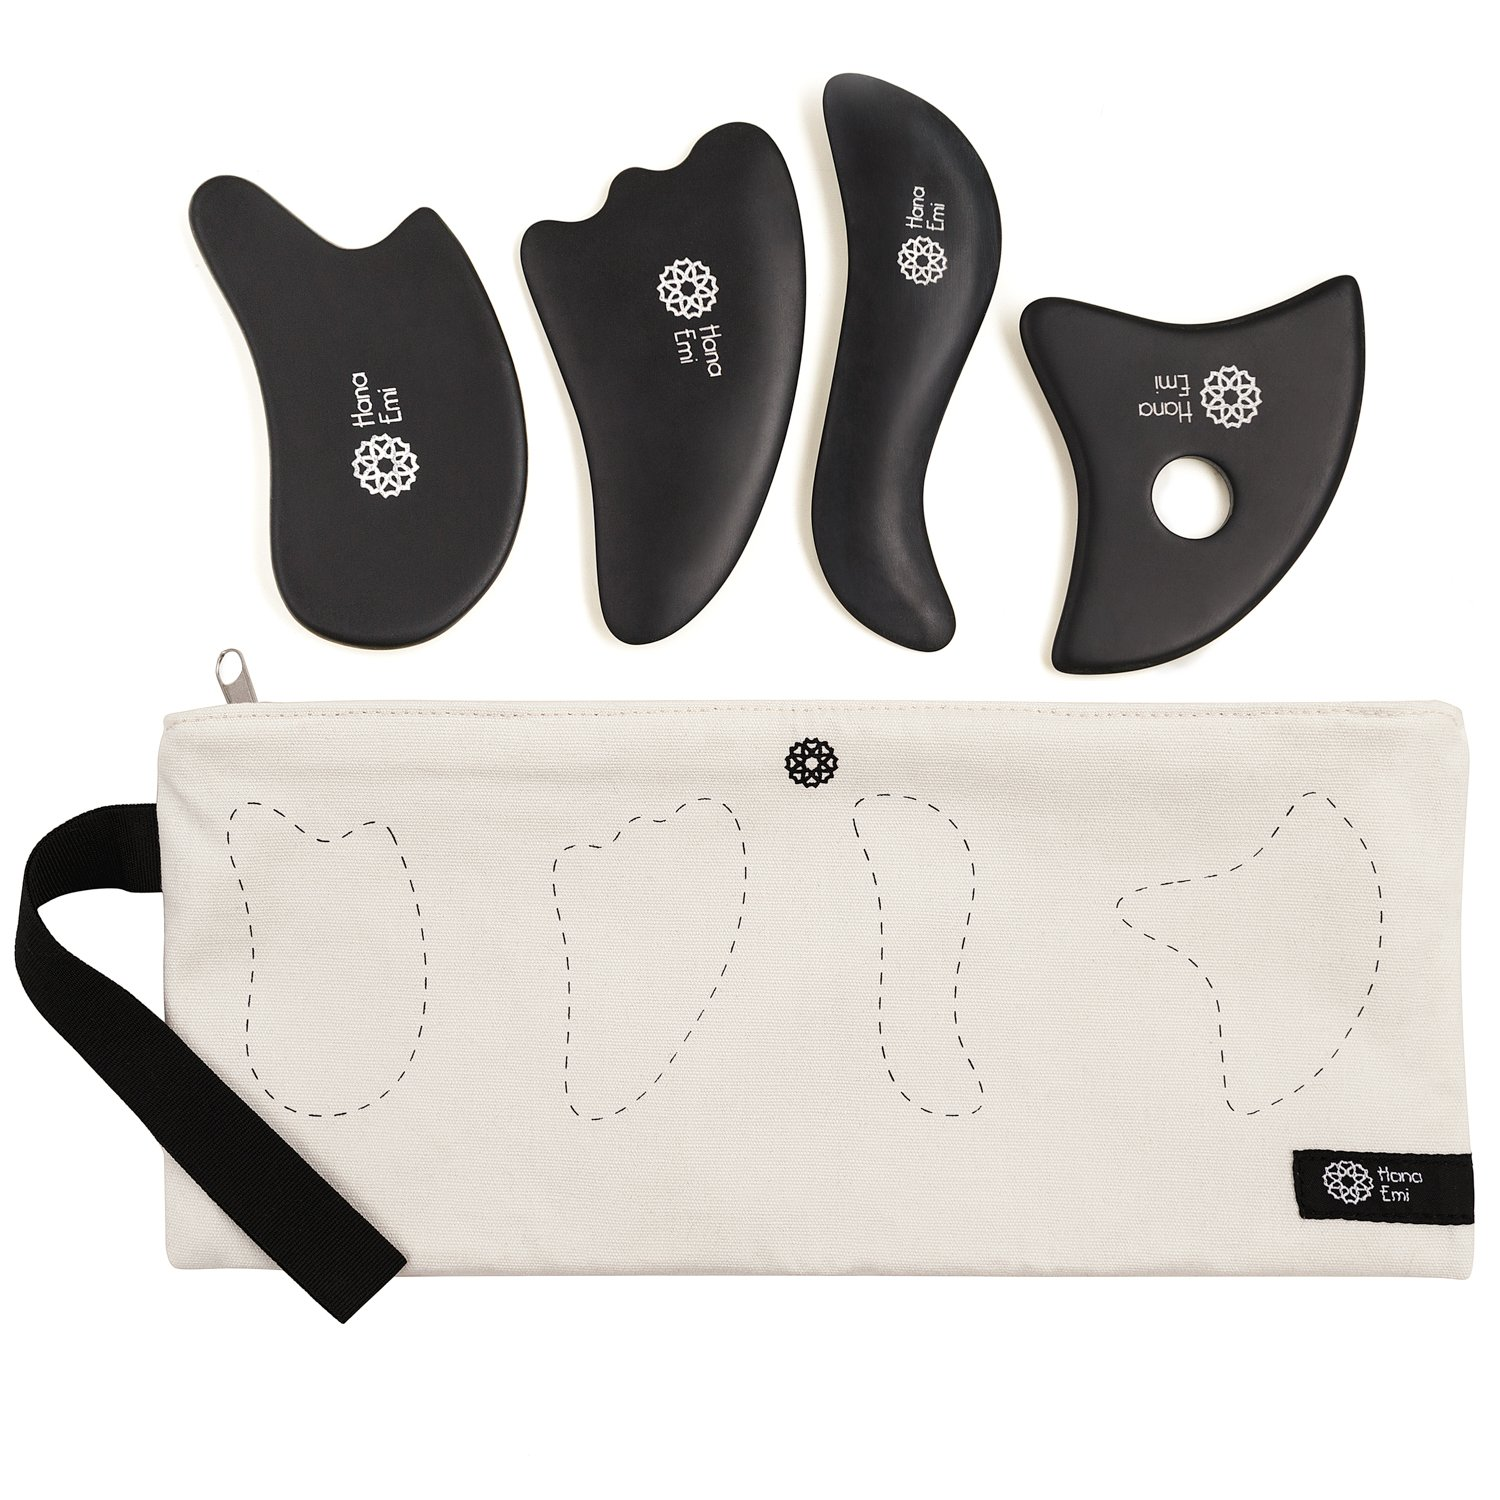 Gua Sha Scraping New life Massage Ranking integrated 1st place Tools with ✮ High Smooth Qlt Edge